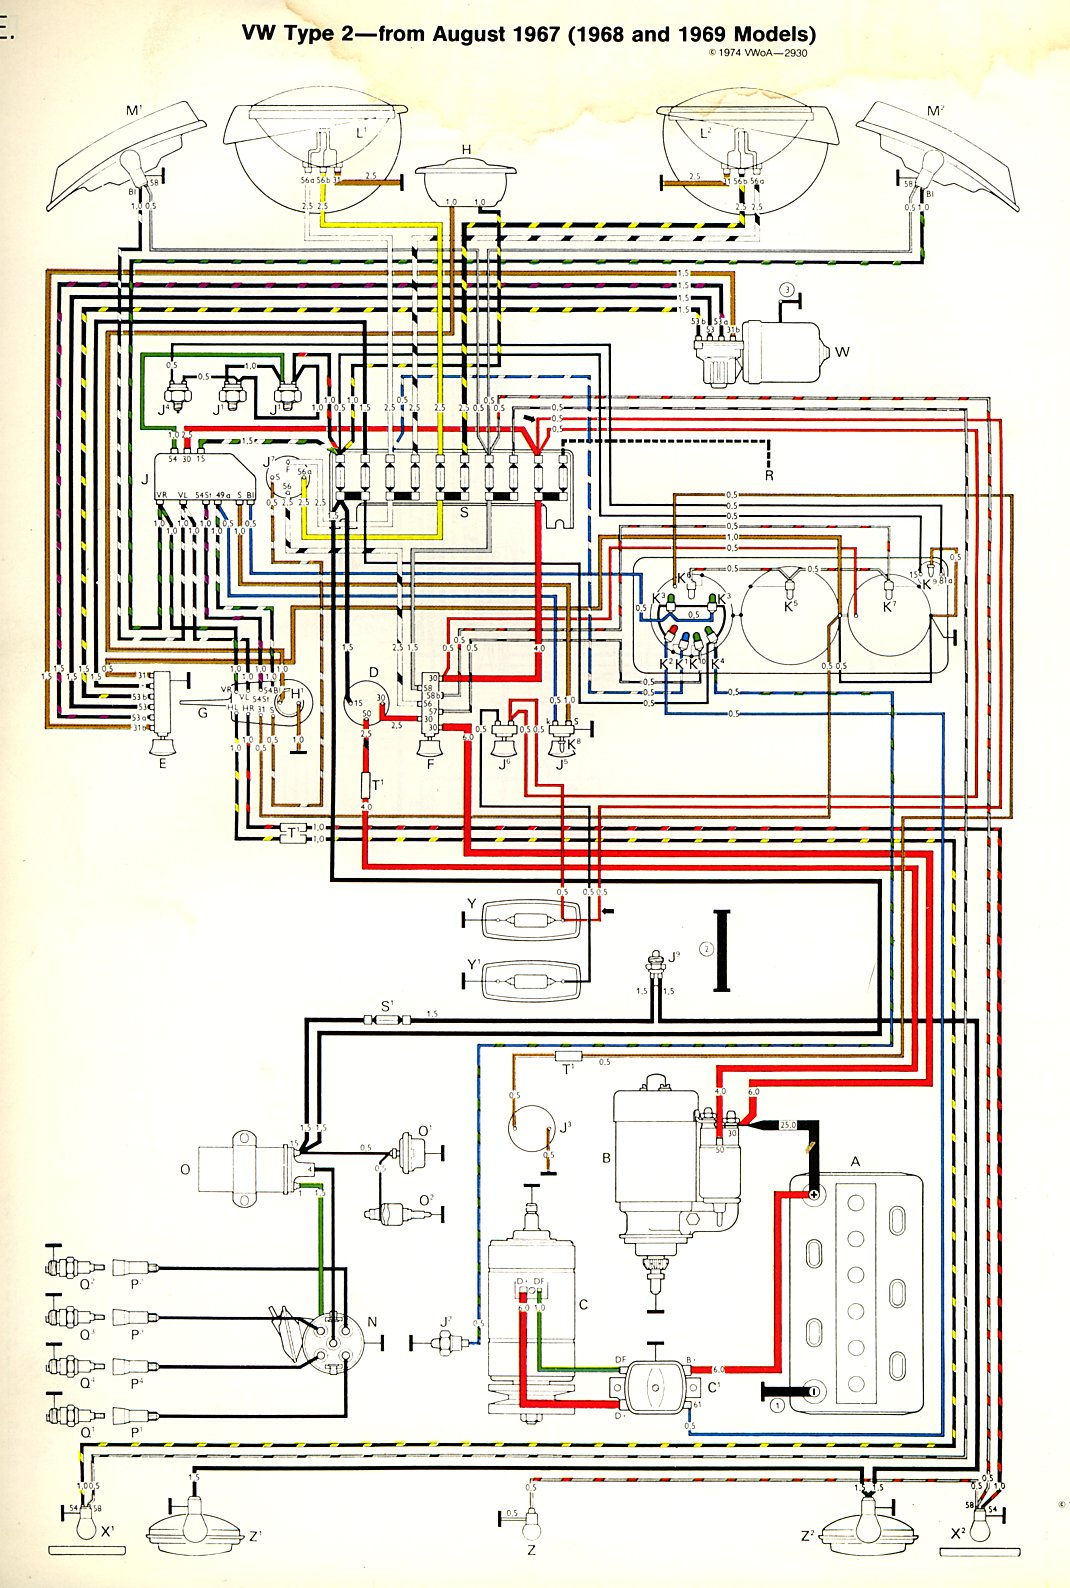 baybus_6869a thesamba com type 2 wiring diagrams vw bus wiring diagram at edmiracle.co